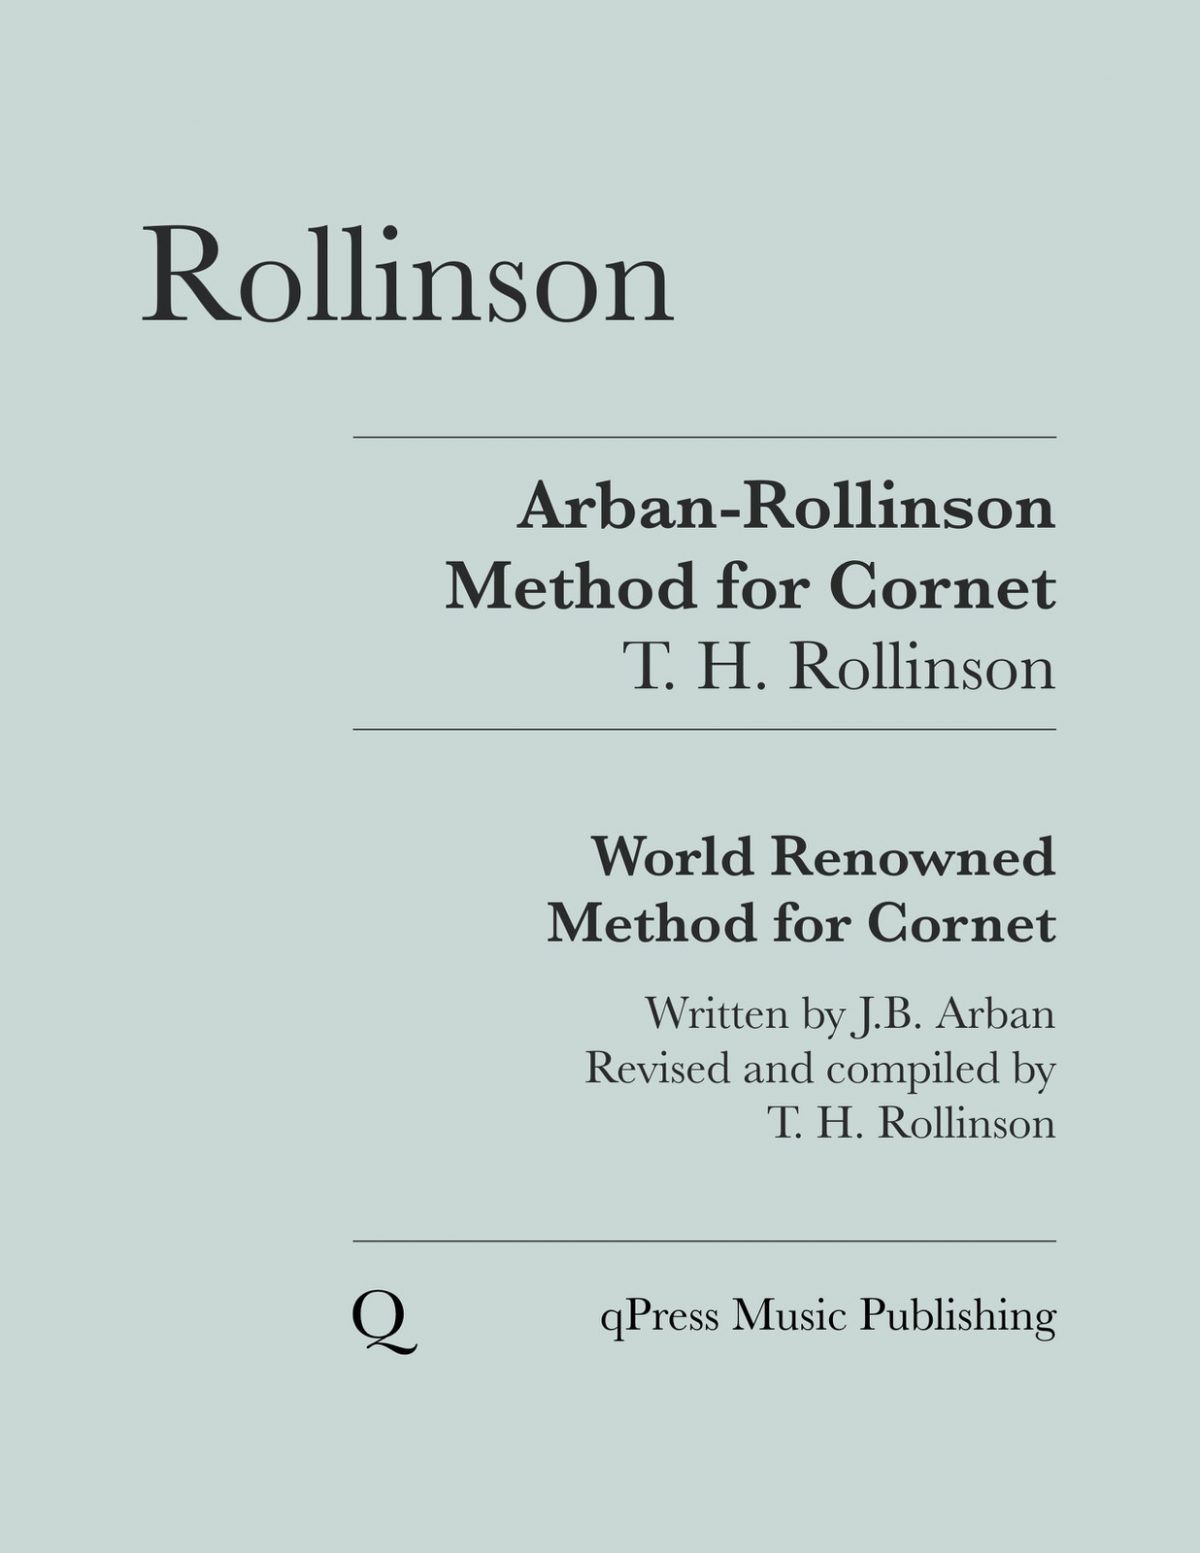 Arban:Rollinson Arban's world renowned method for the cornet (1879)